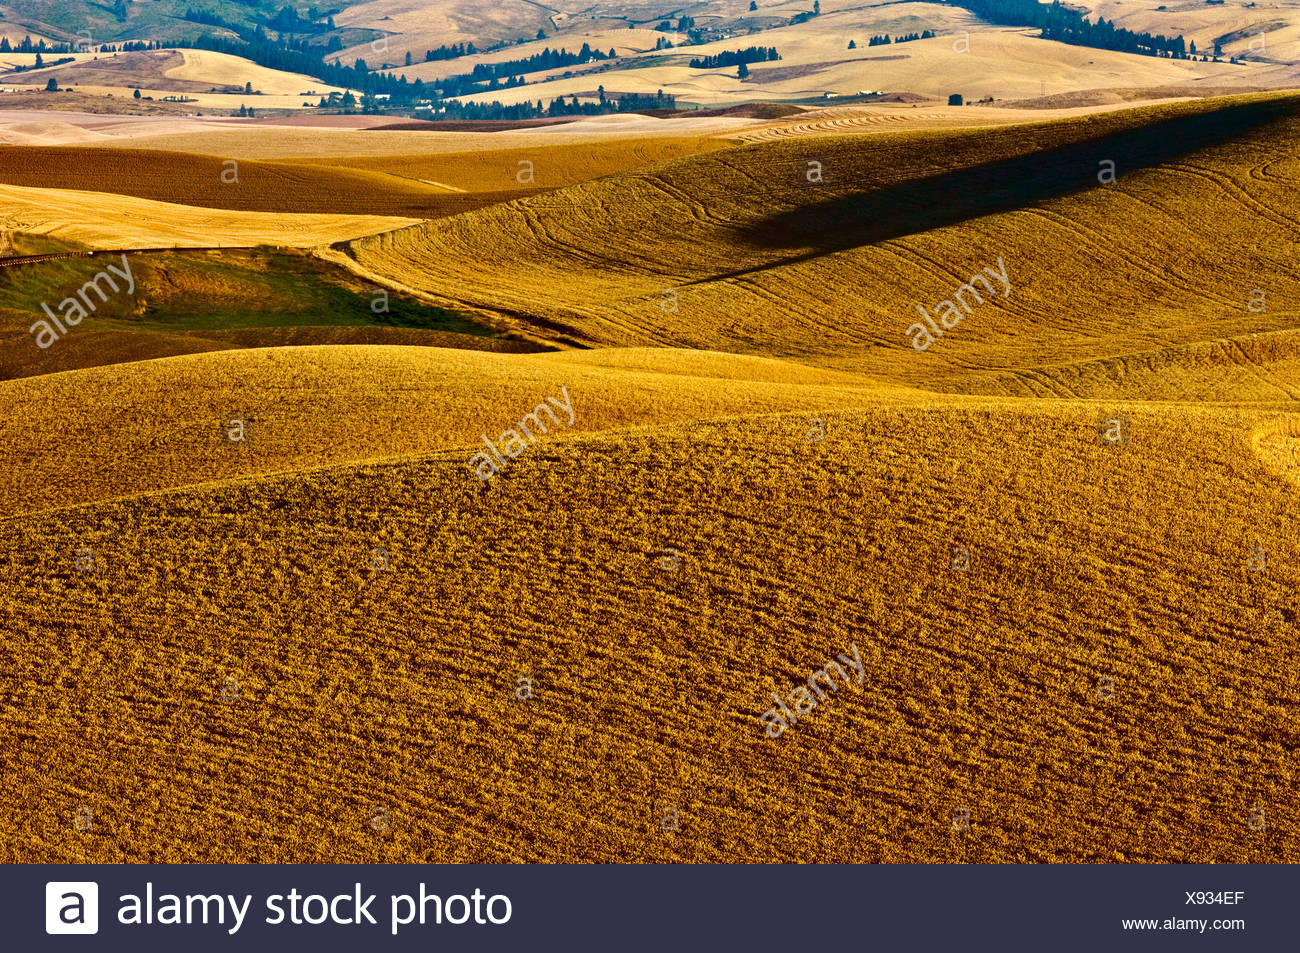 Rolling hills of mature wheat ready for harvest in late afternoon light / near Pullman, Palouse Region, Washington, USA. - Stock Image